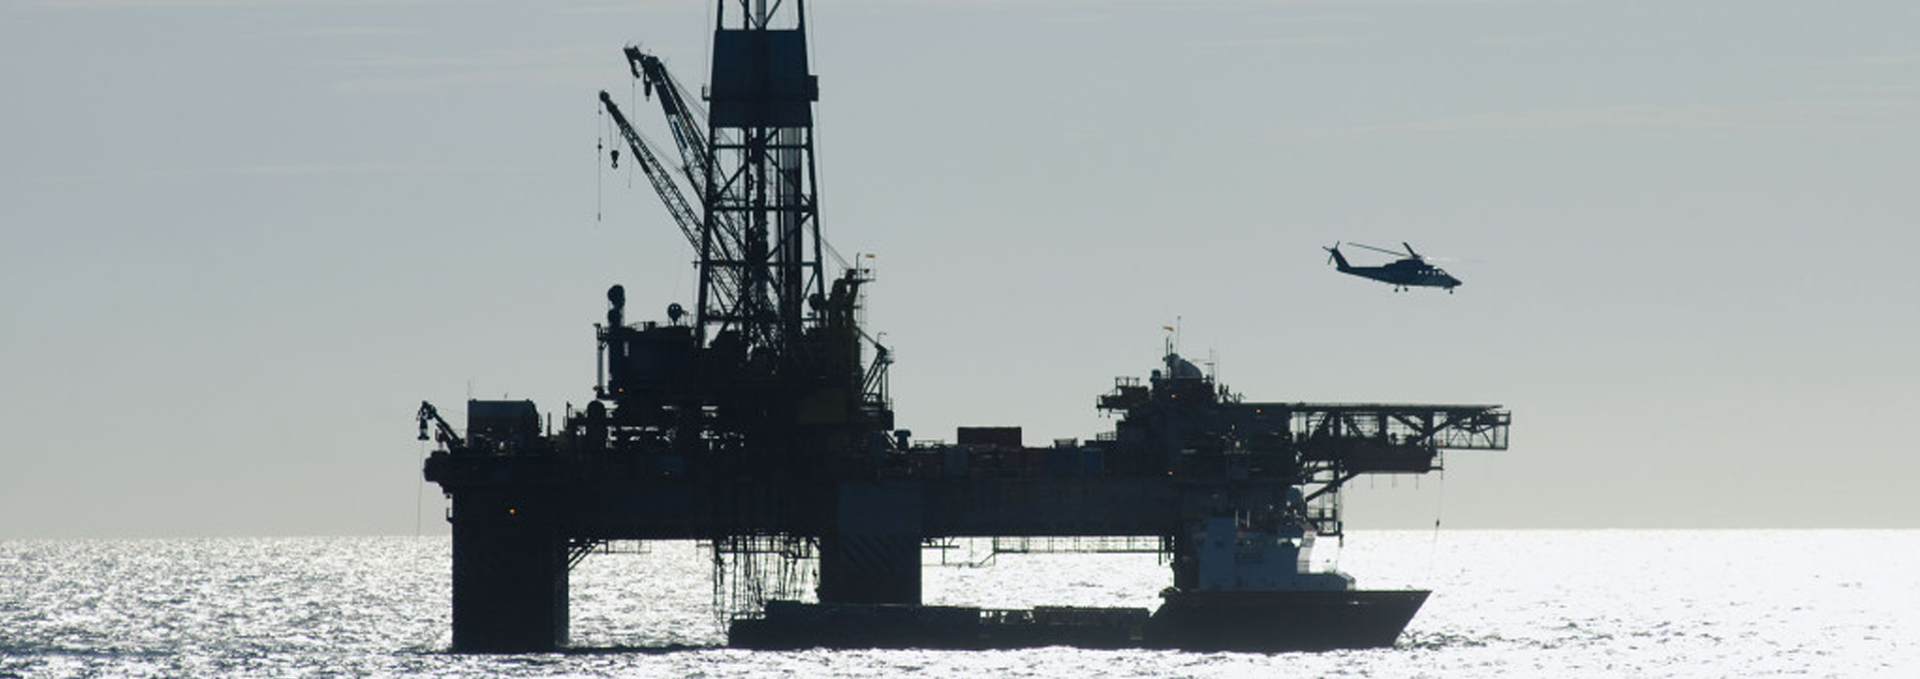 Offshore Energy Law